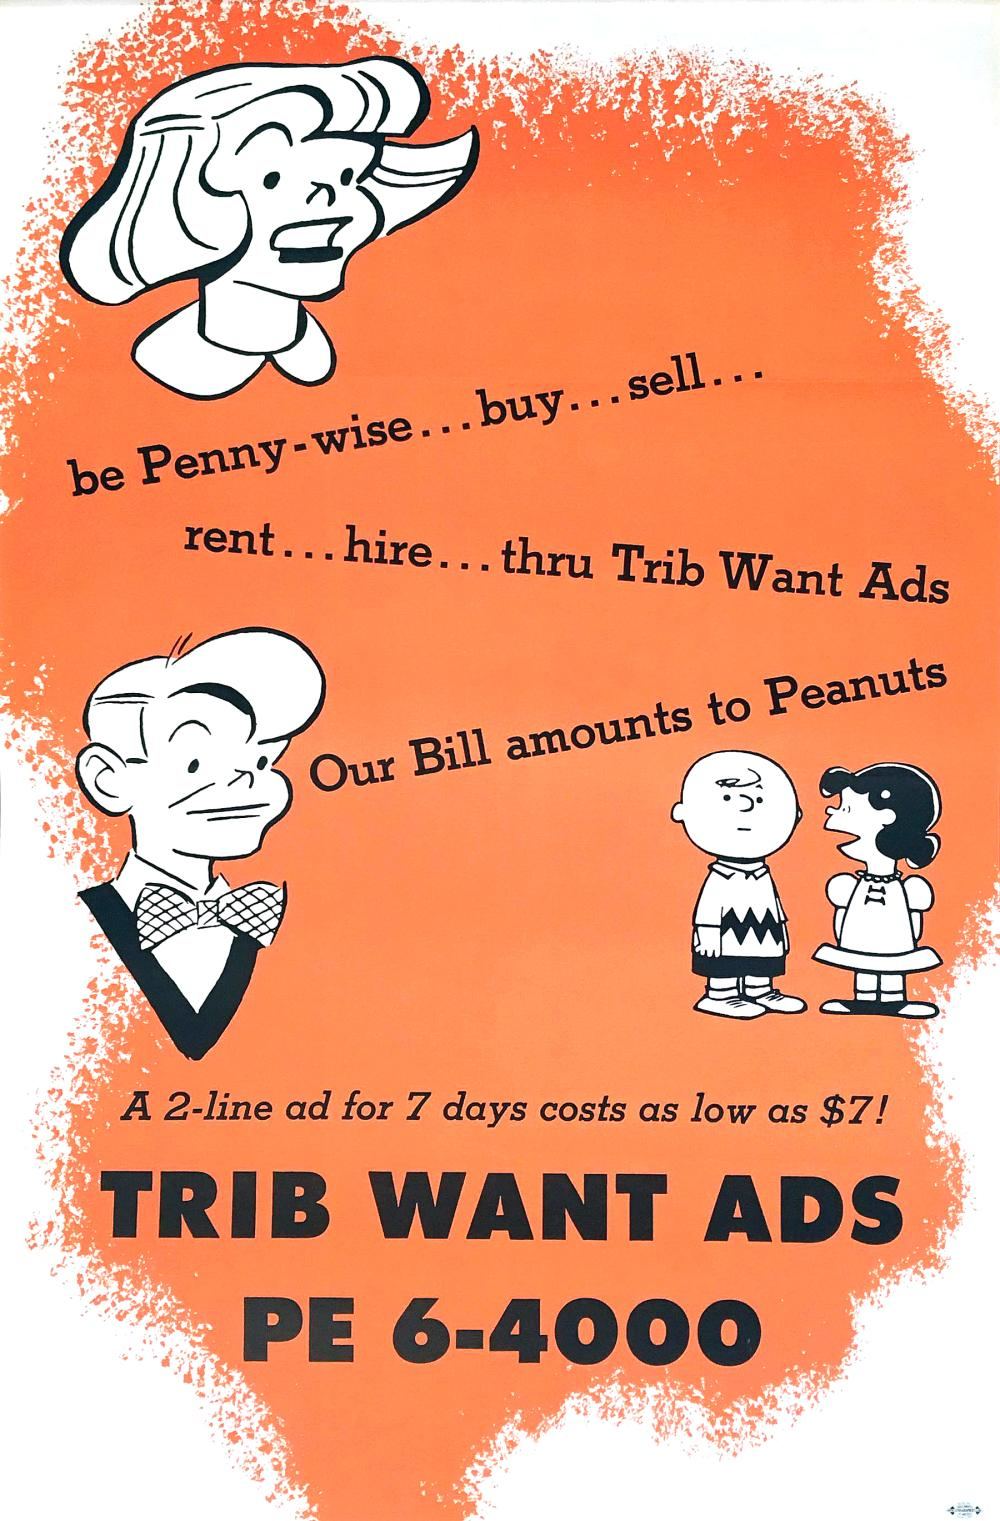 Original Charles Schulz Peanuts Be Penny Wise Vintage Poster for the Chicago Tribune Want Ads